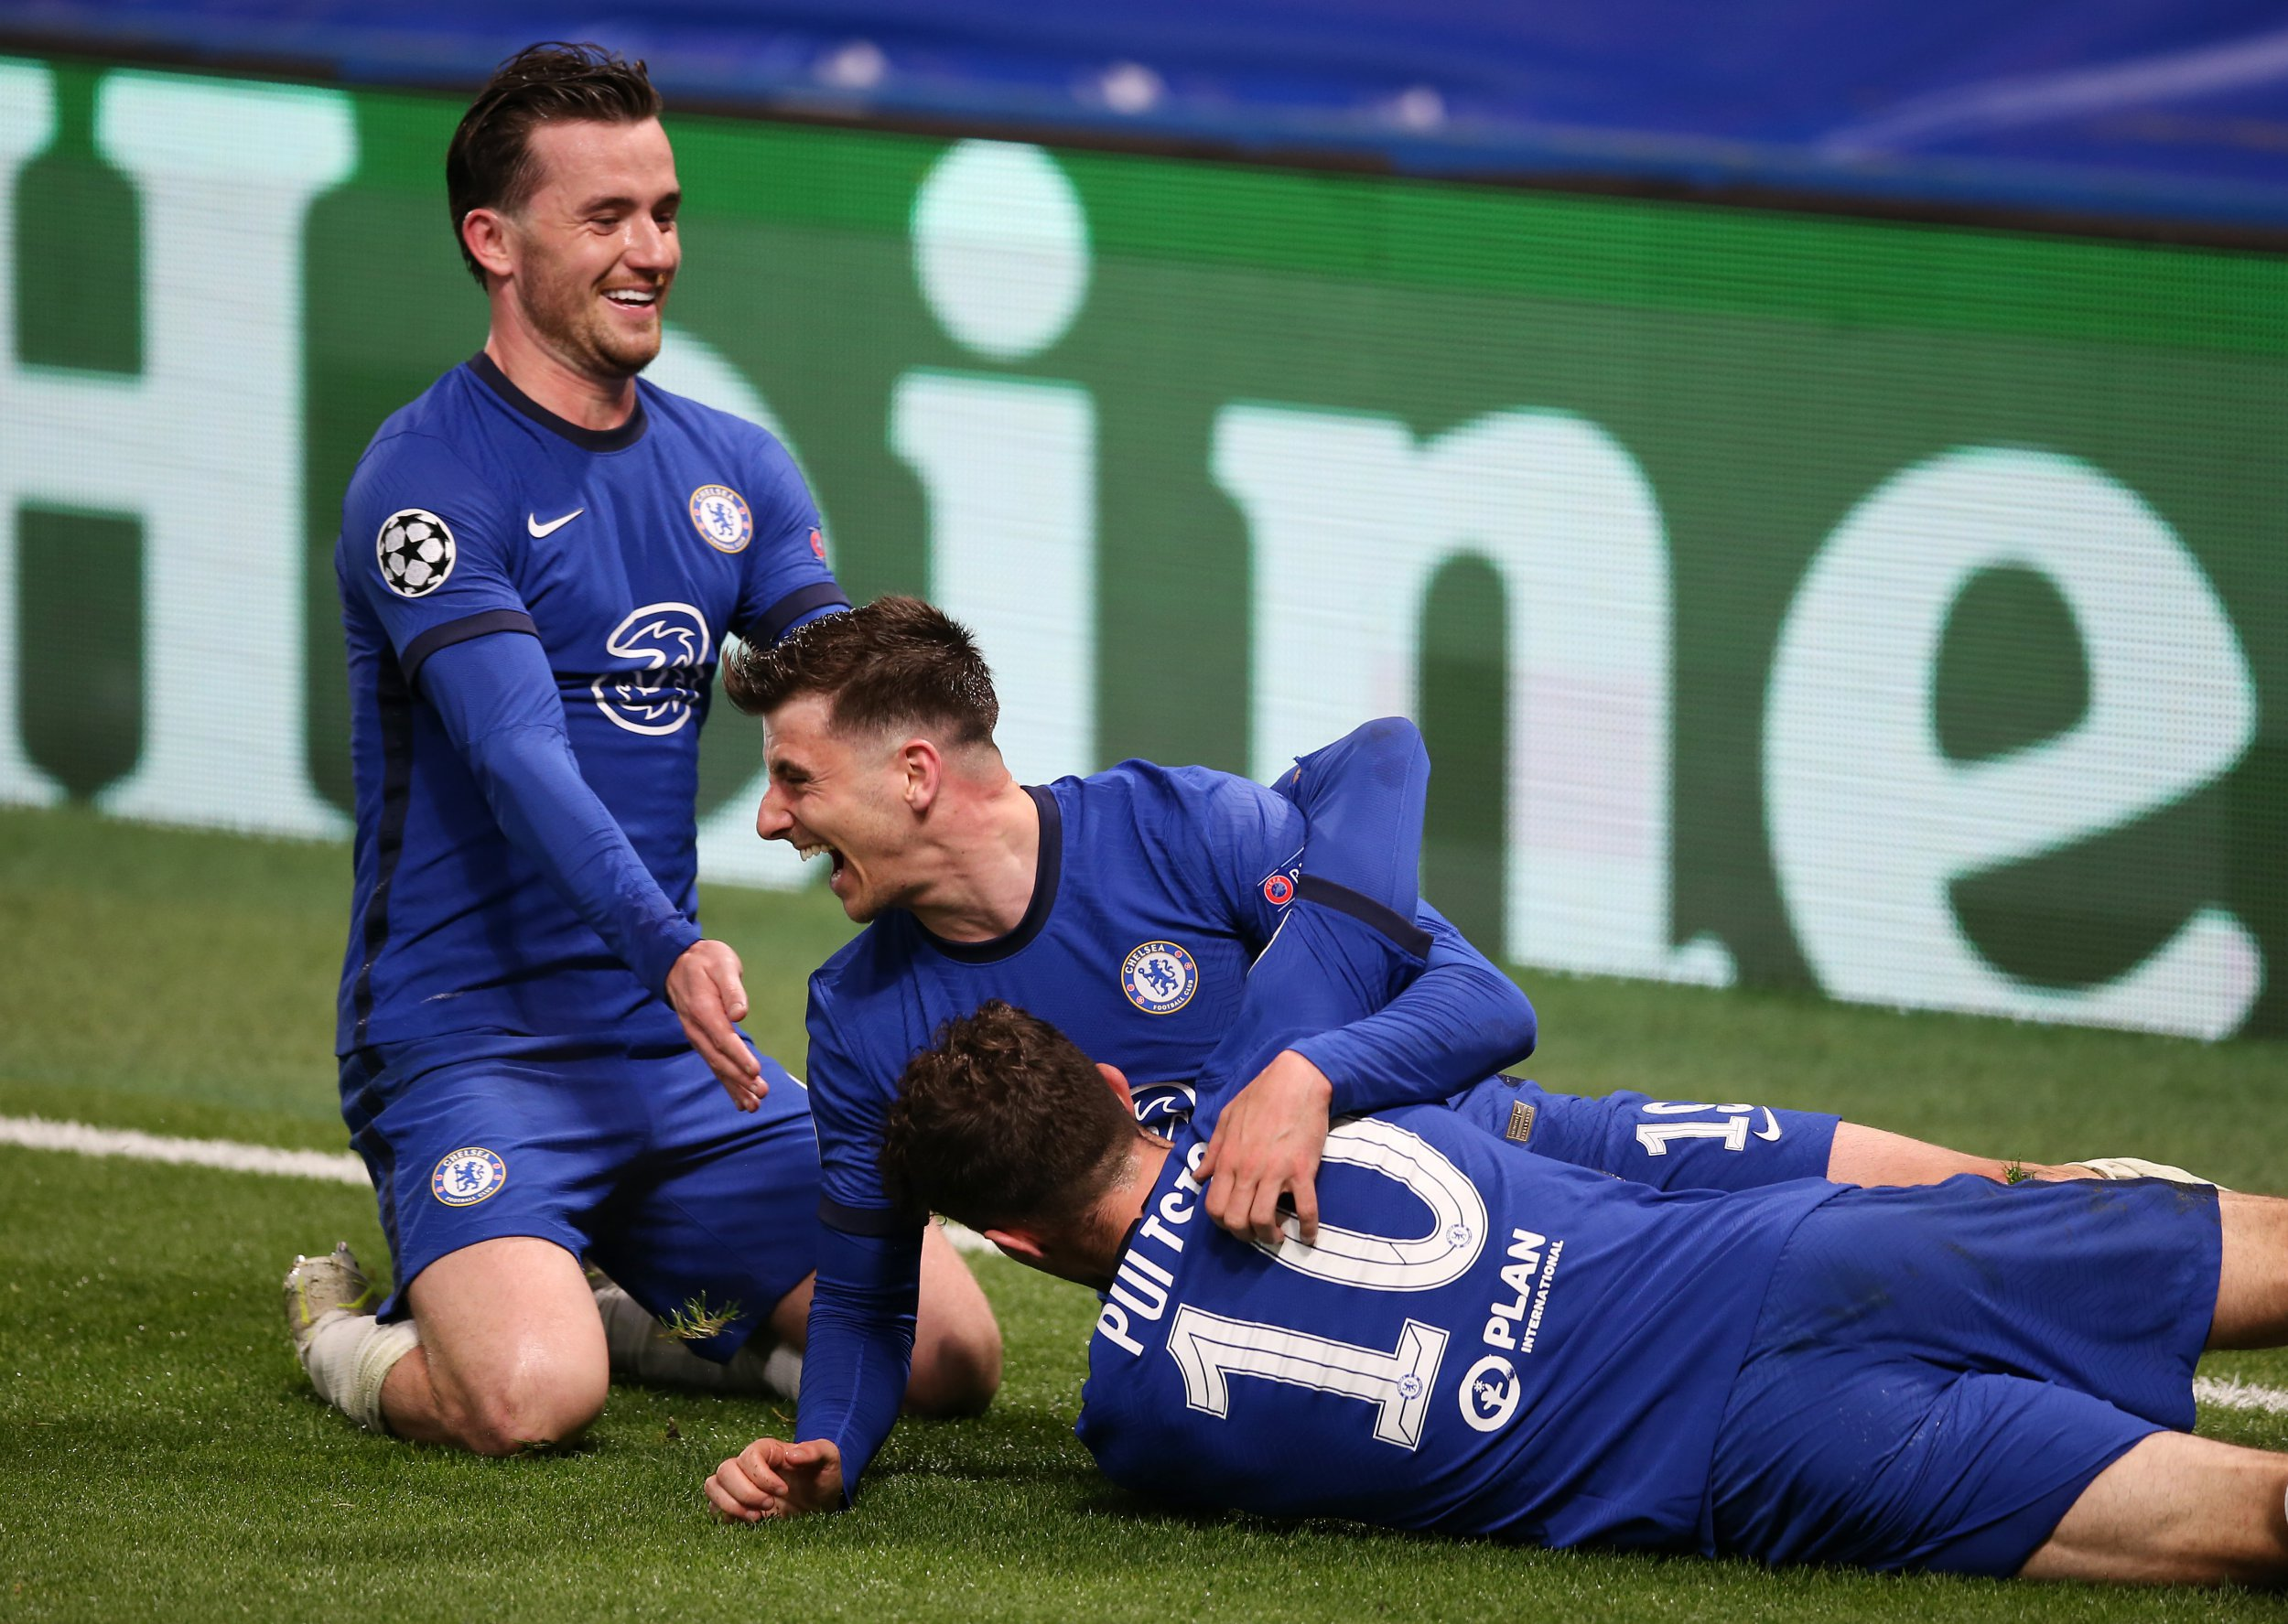 Chelsea has won its second champions league title, delivered by a kai havertz goal in a thrilling, taut final marred by a head injury. When is the Champions League final 2021? Date, kick-off